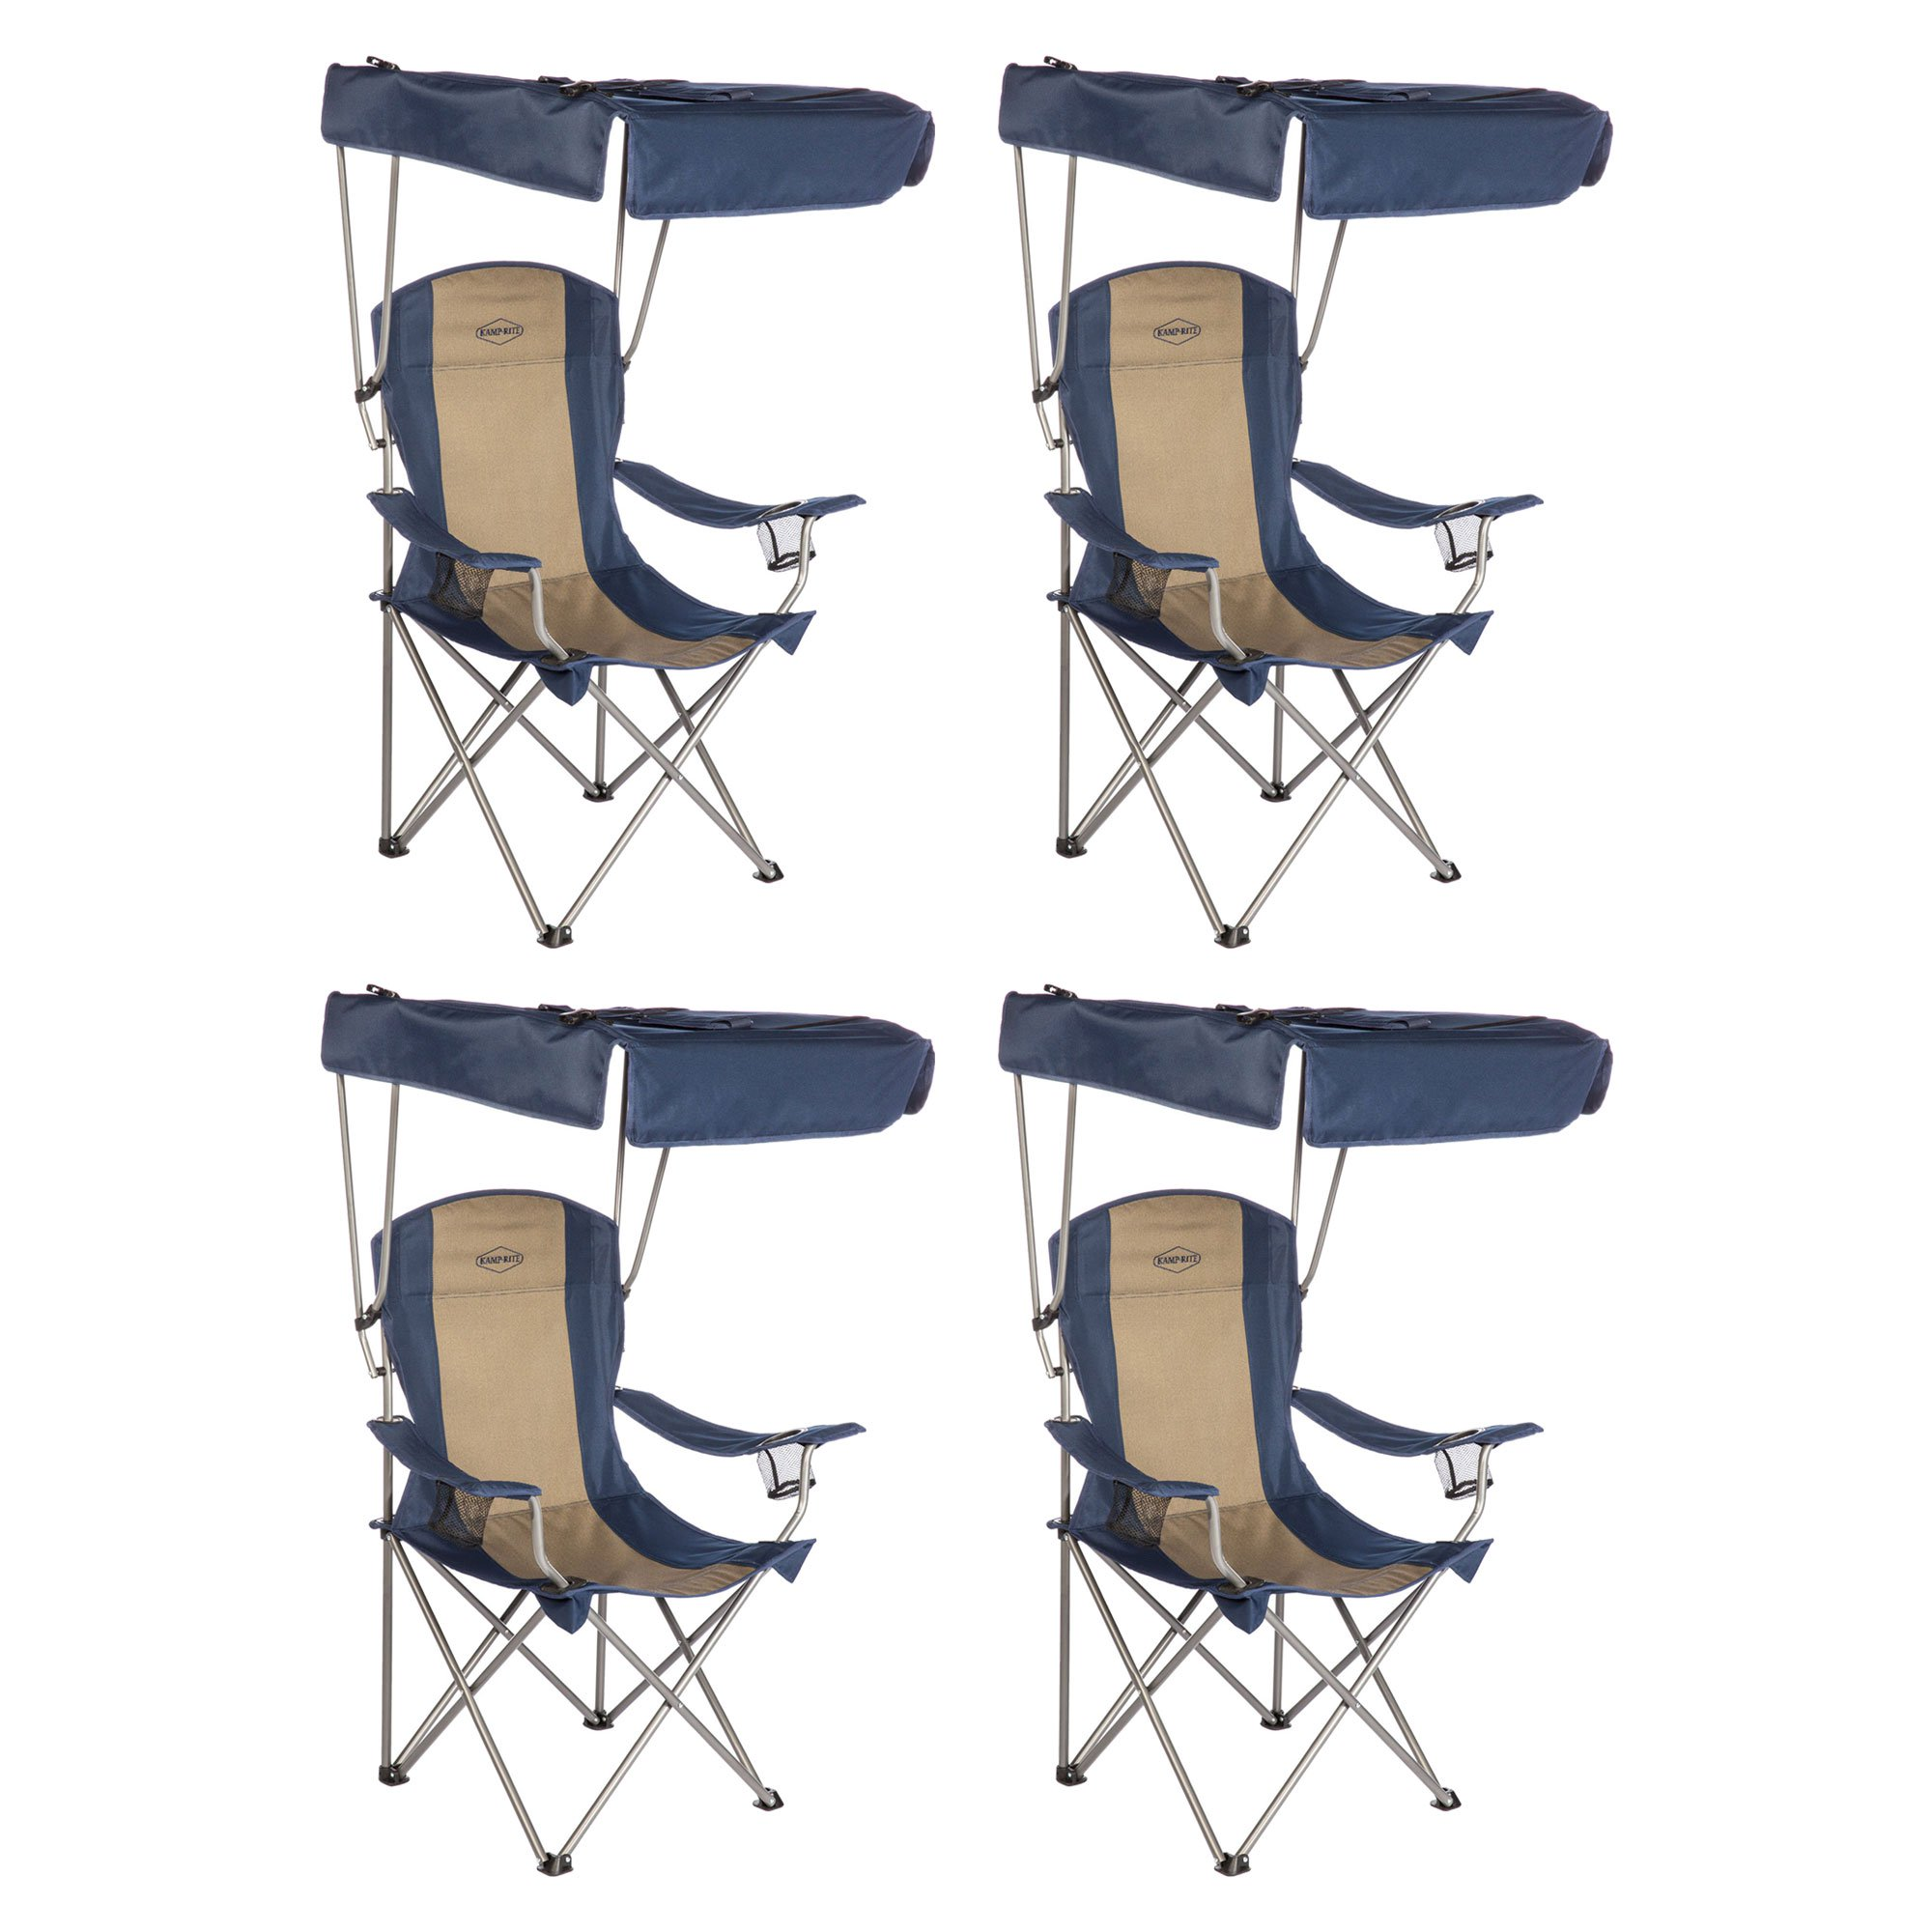 Kamp-Rite Outdoor Tailgating Camping Shade Canopy Folding Lawn Chair (4 Pack)